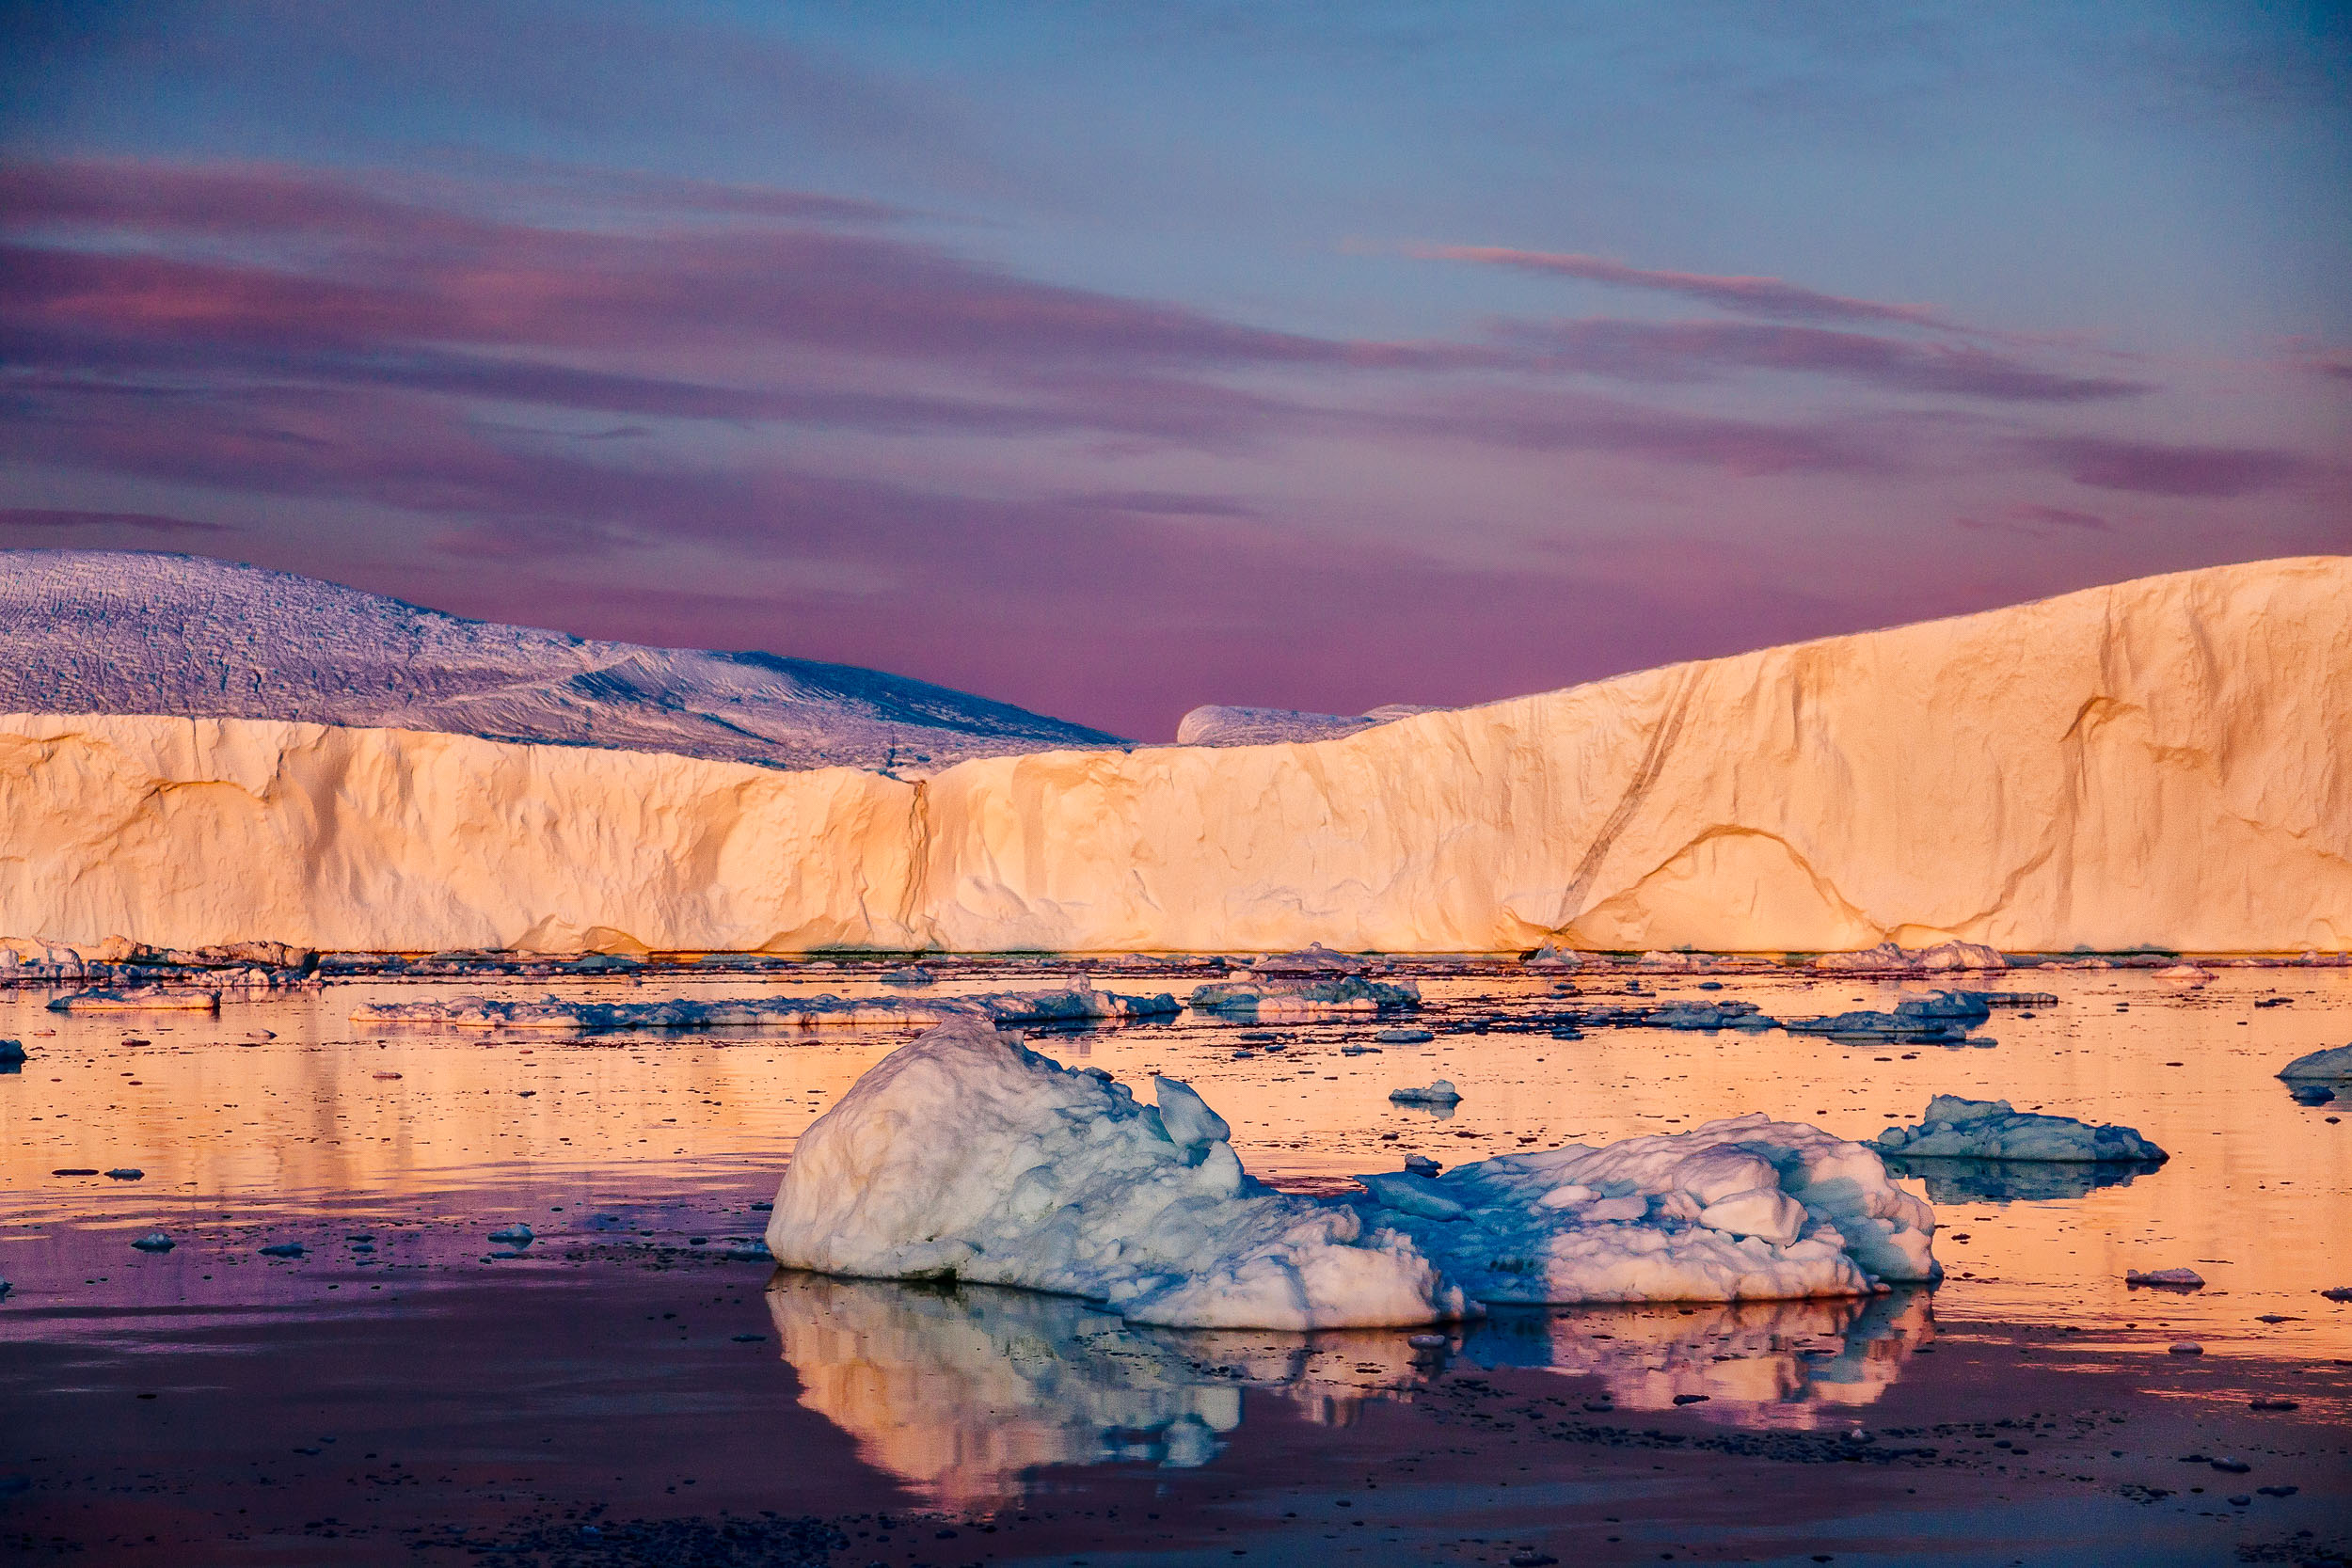 Striking colors and bold light  on display during a  midnight cruise  on the  Ilulissat Icefjord  in  Greenland .